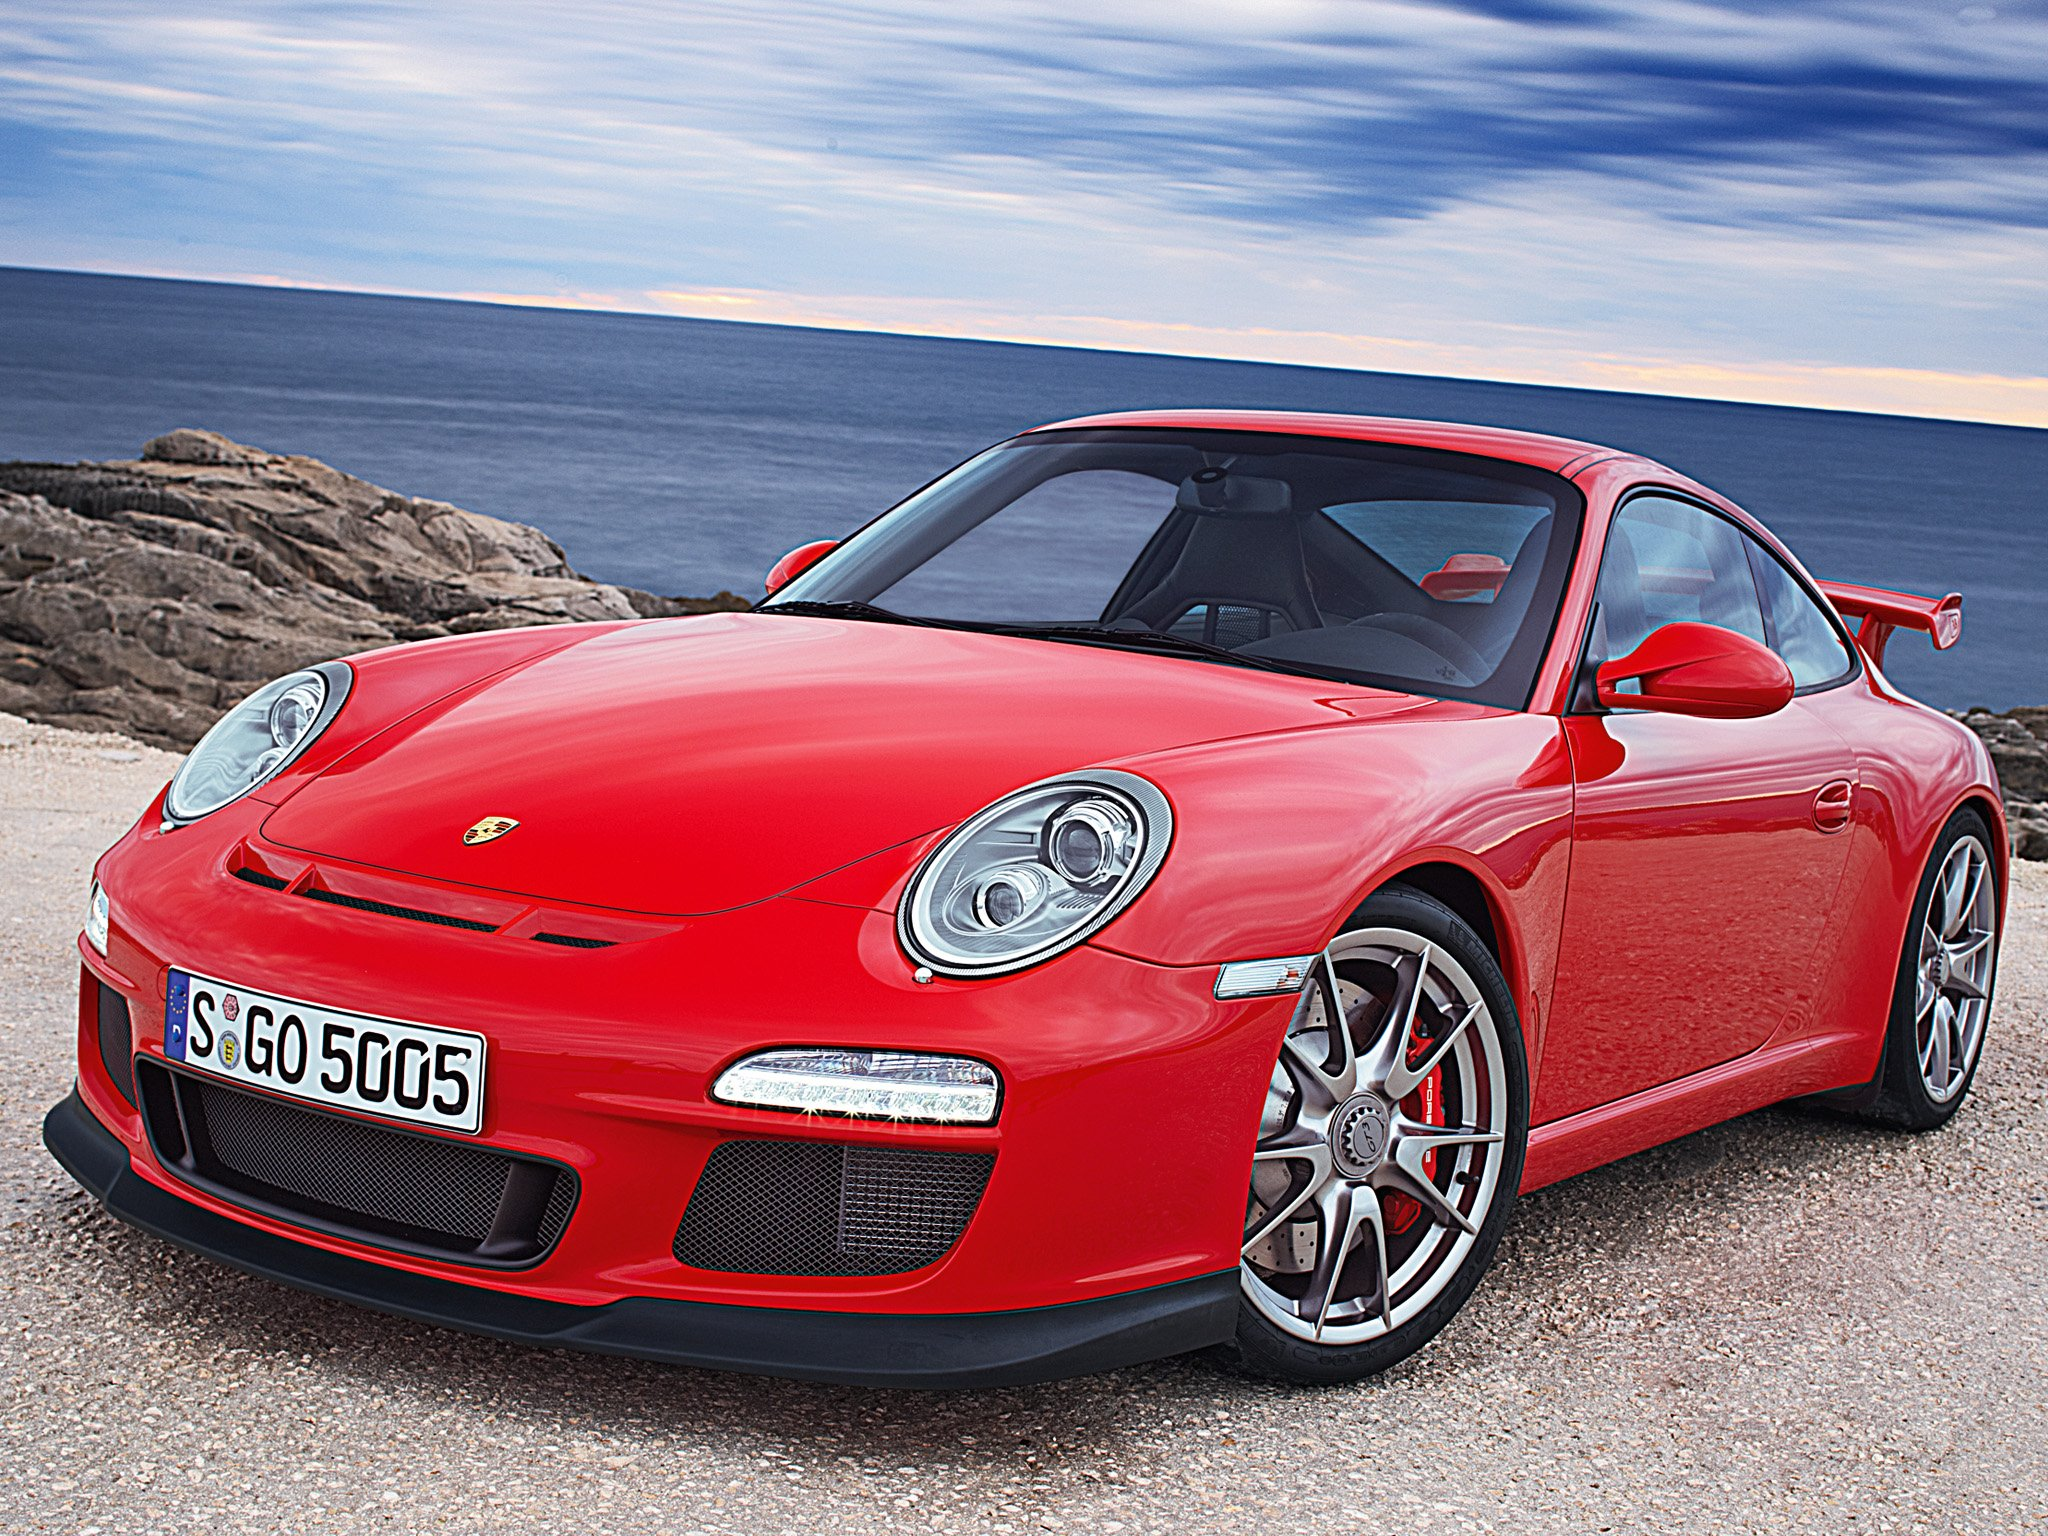 porsche pestel [1] pest analysis is a process of checking and analyzing information relating to the environment the pest analysis is a useful tool for understanding market growth or decline, and as such the position, potential and direction for a business as a business measurement tool.